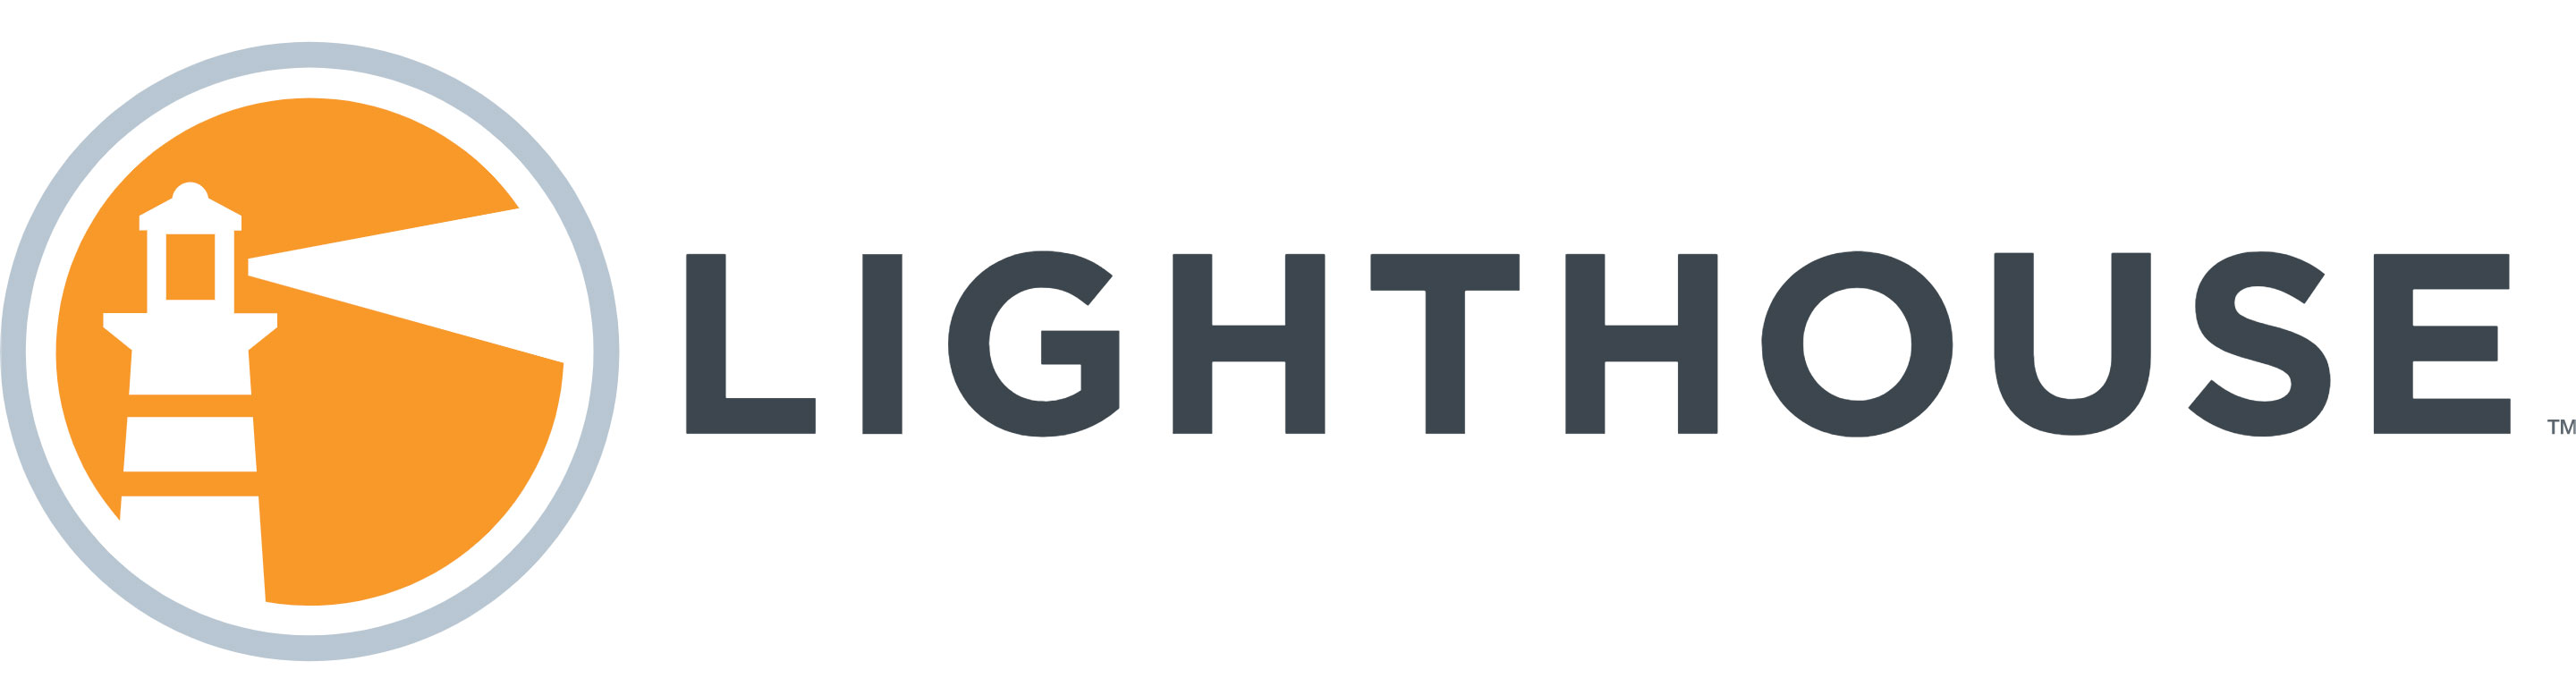 lighthouse-logo